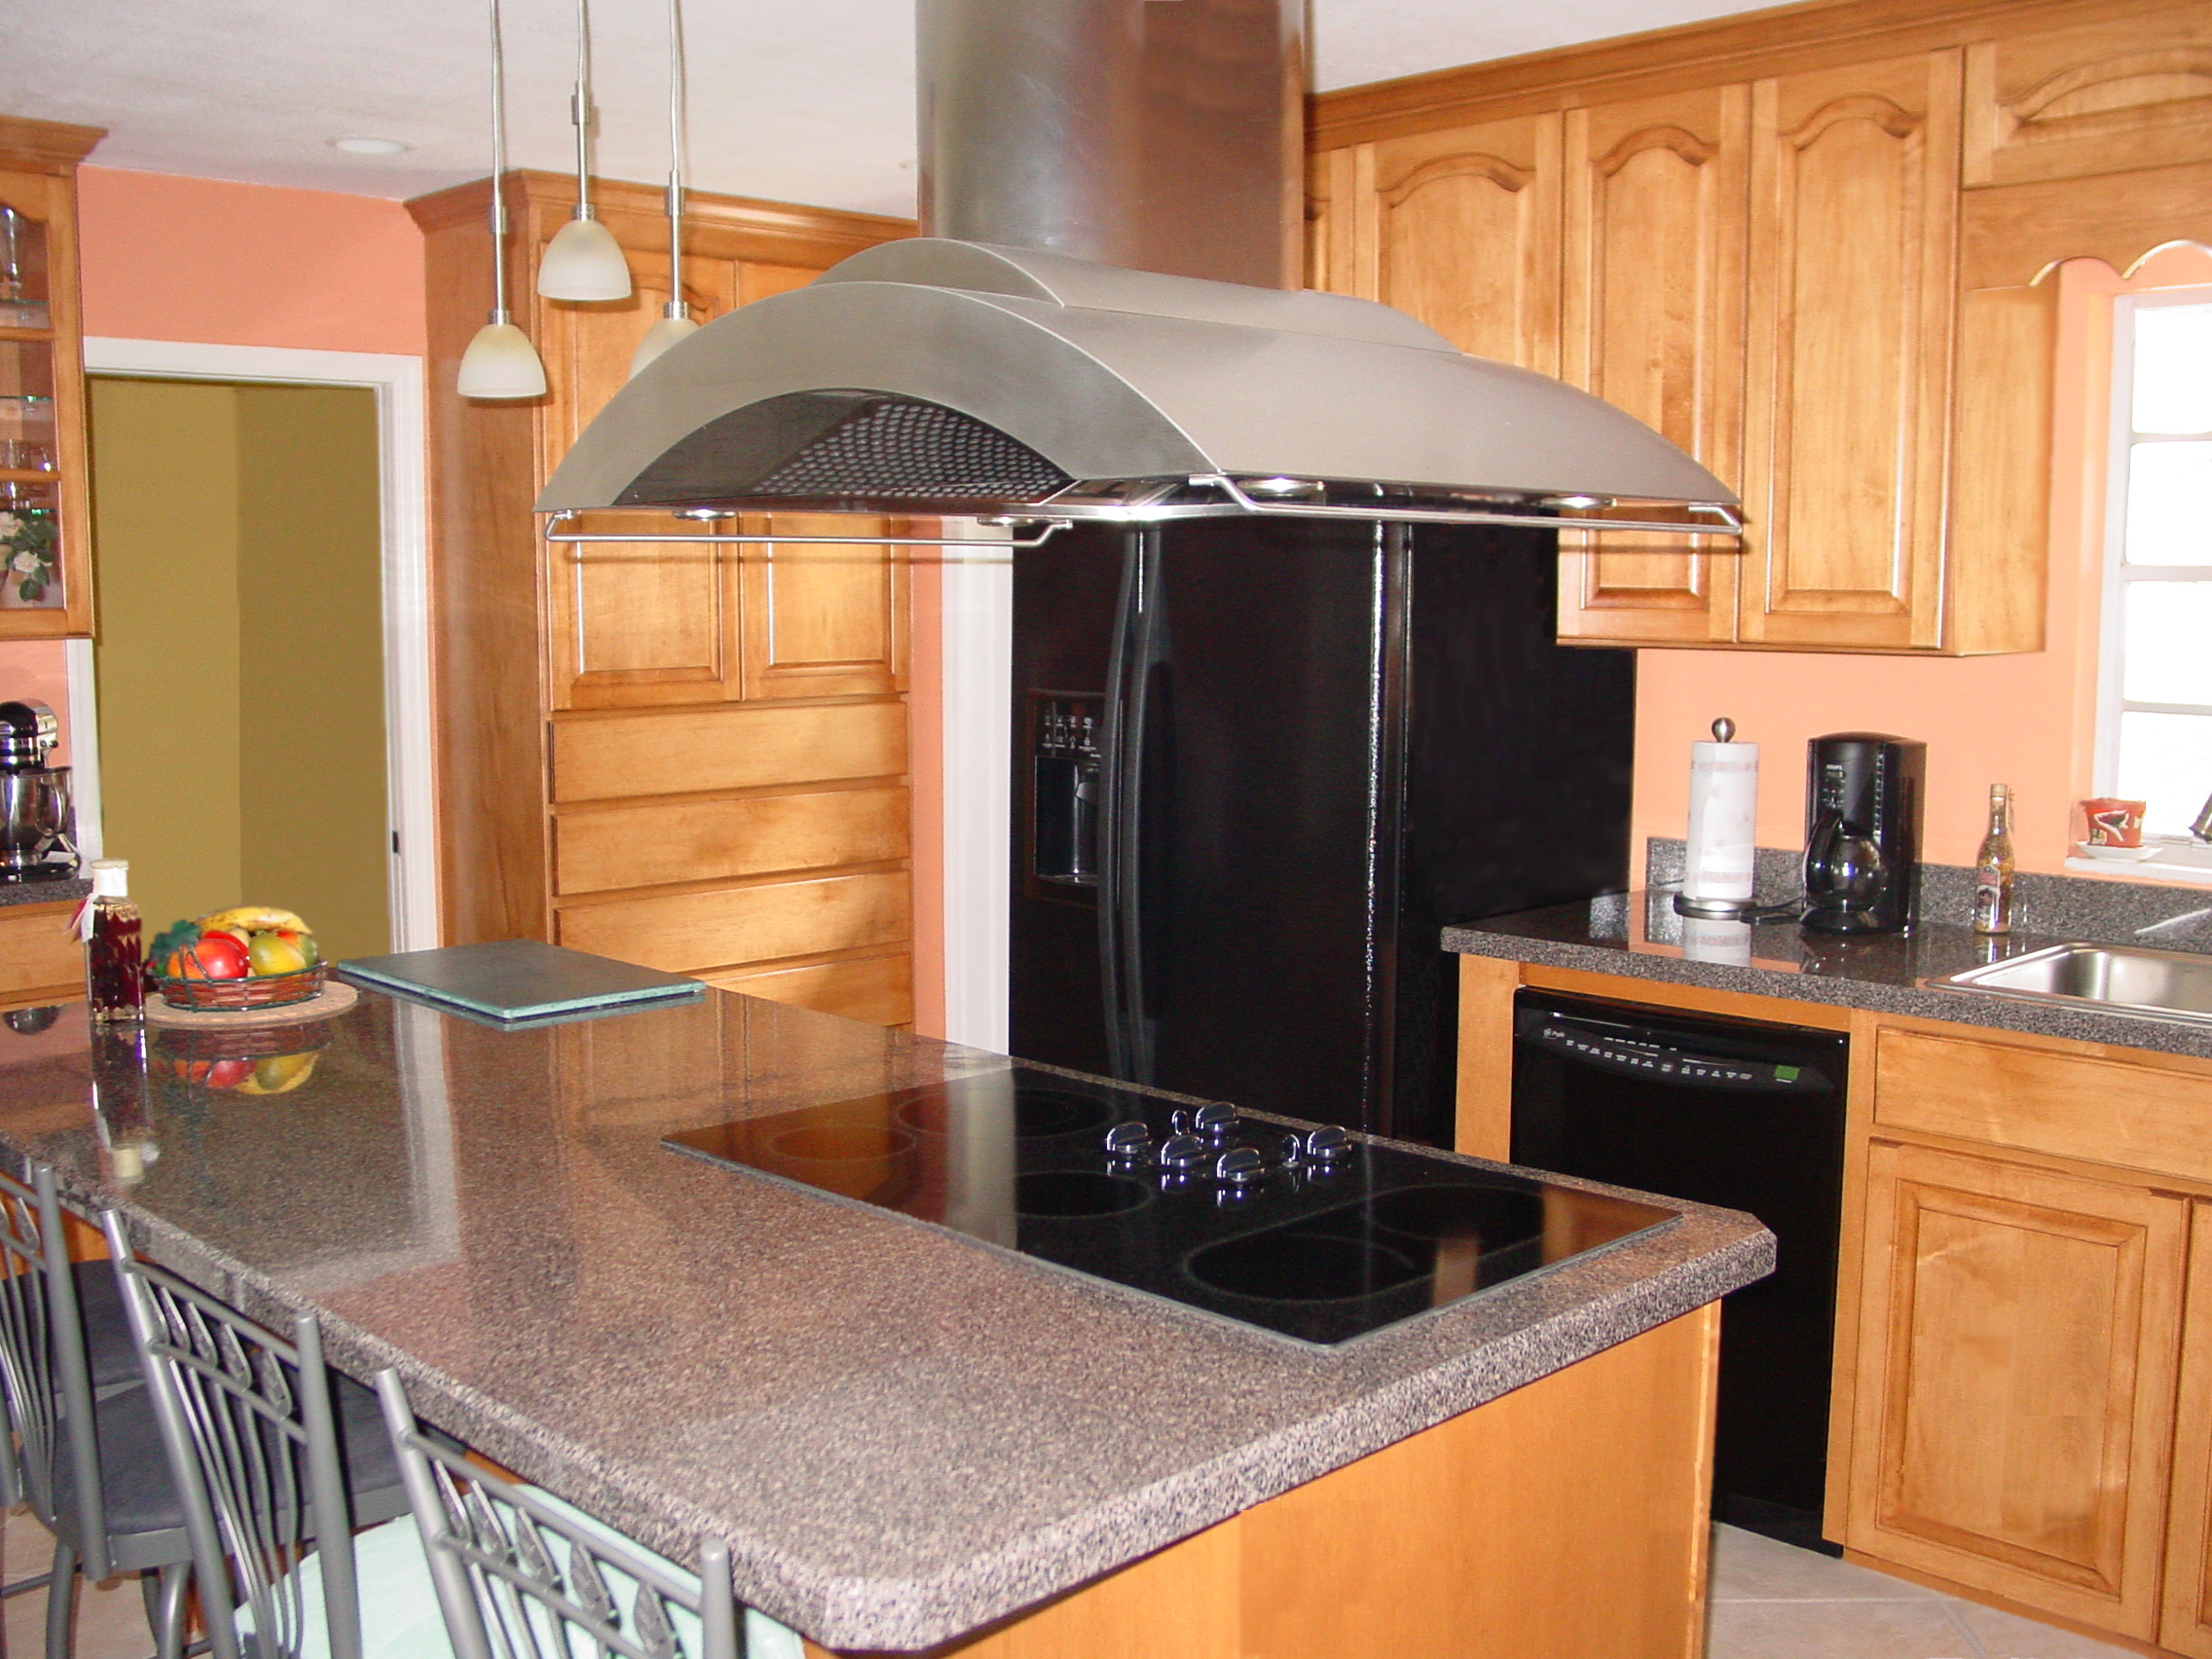 Kitchen Cabinets Resurfacing Remodeling Orlando Ocala